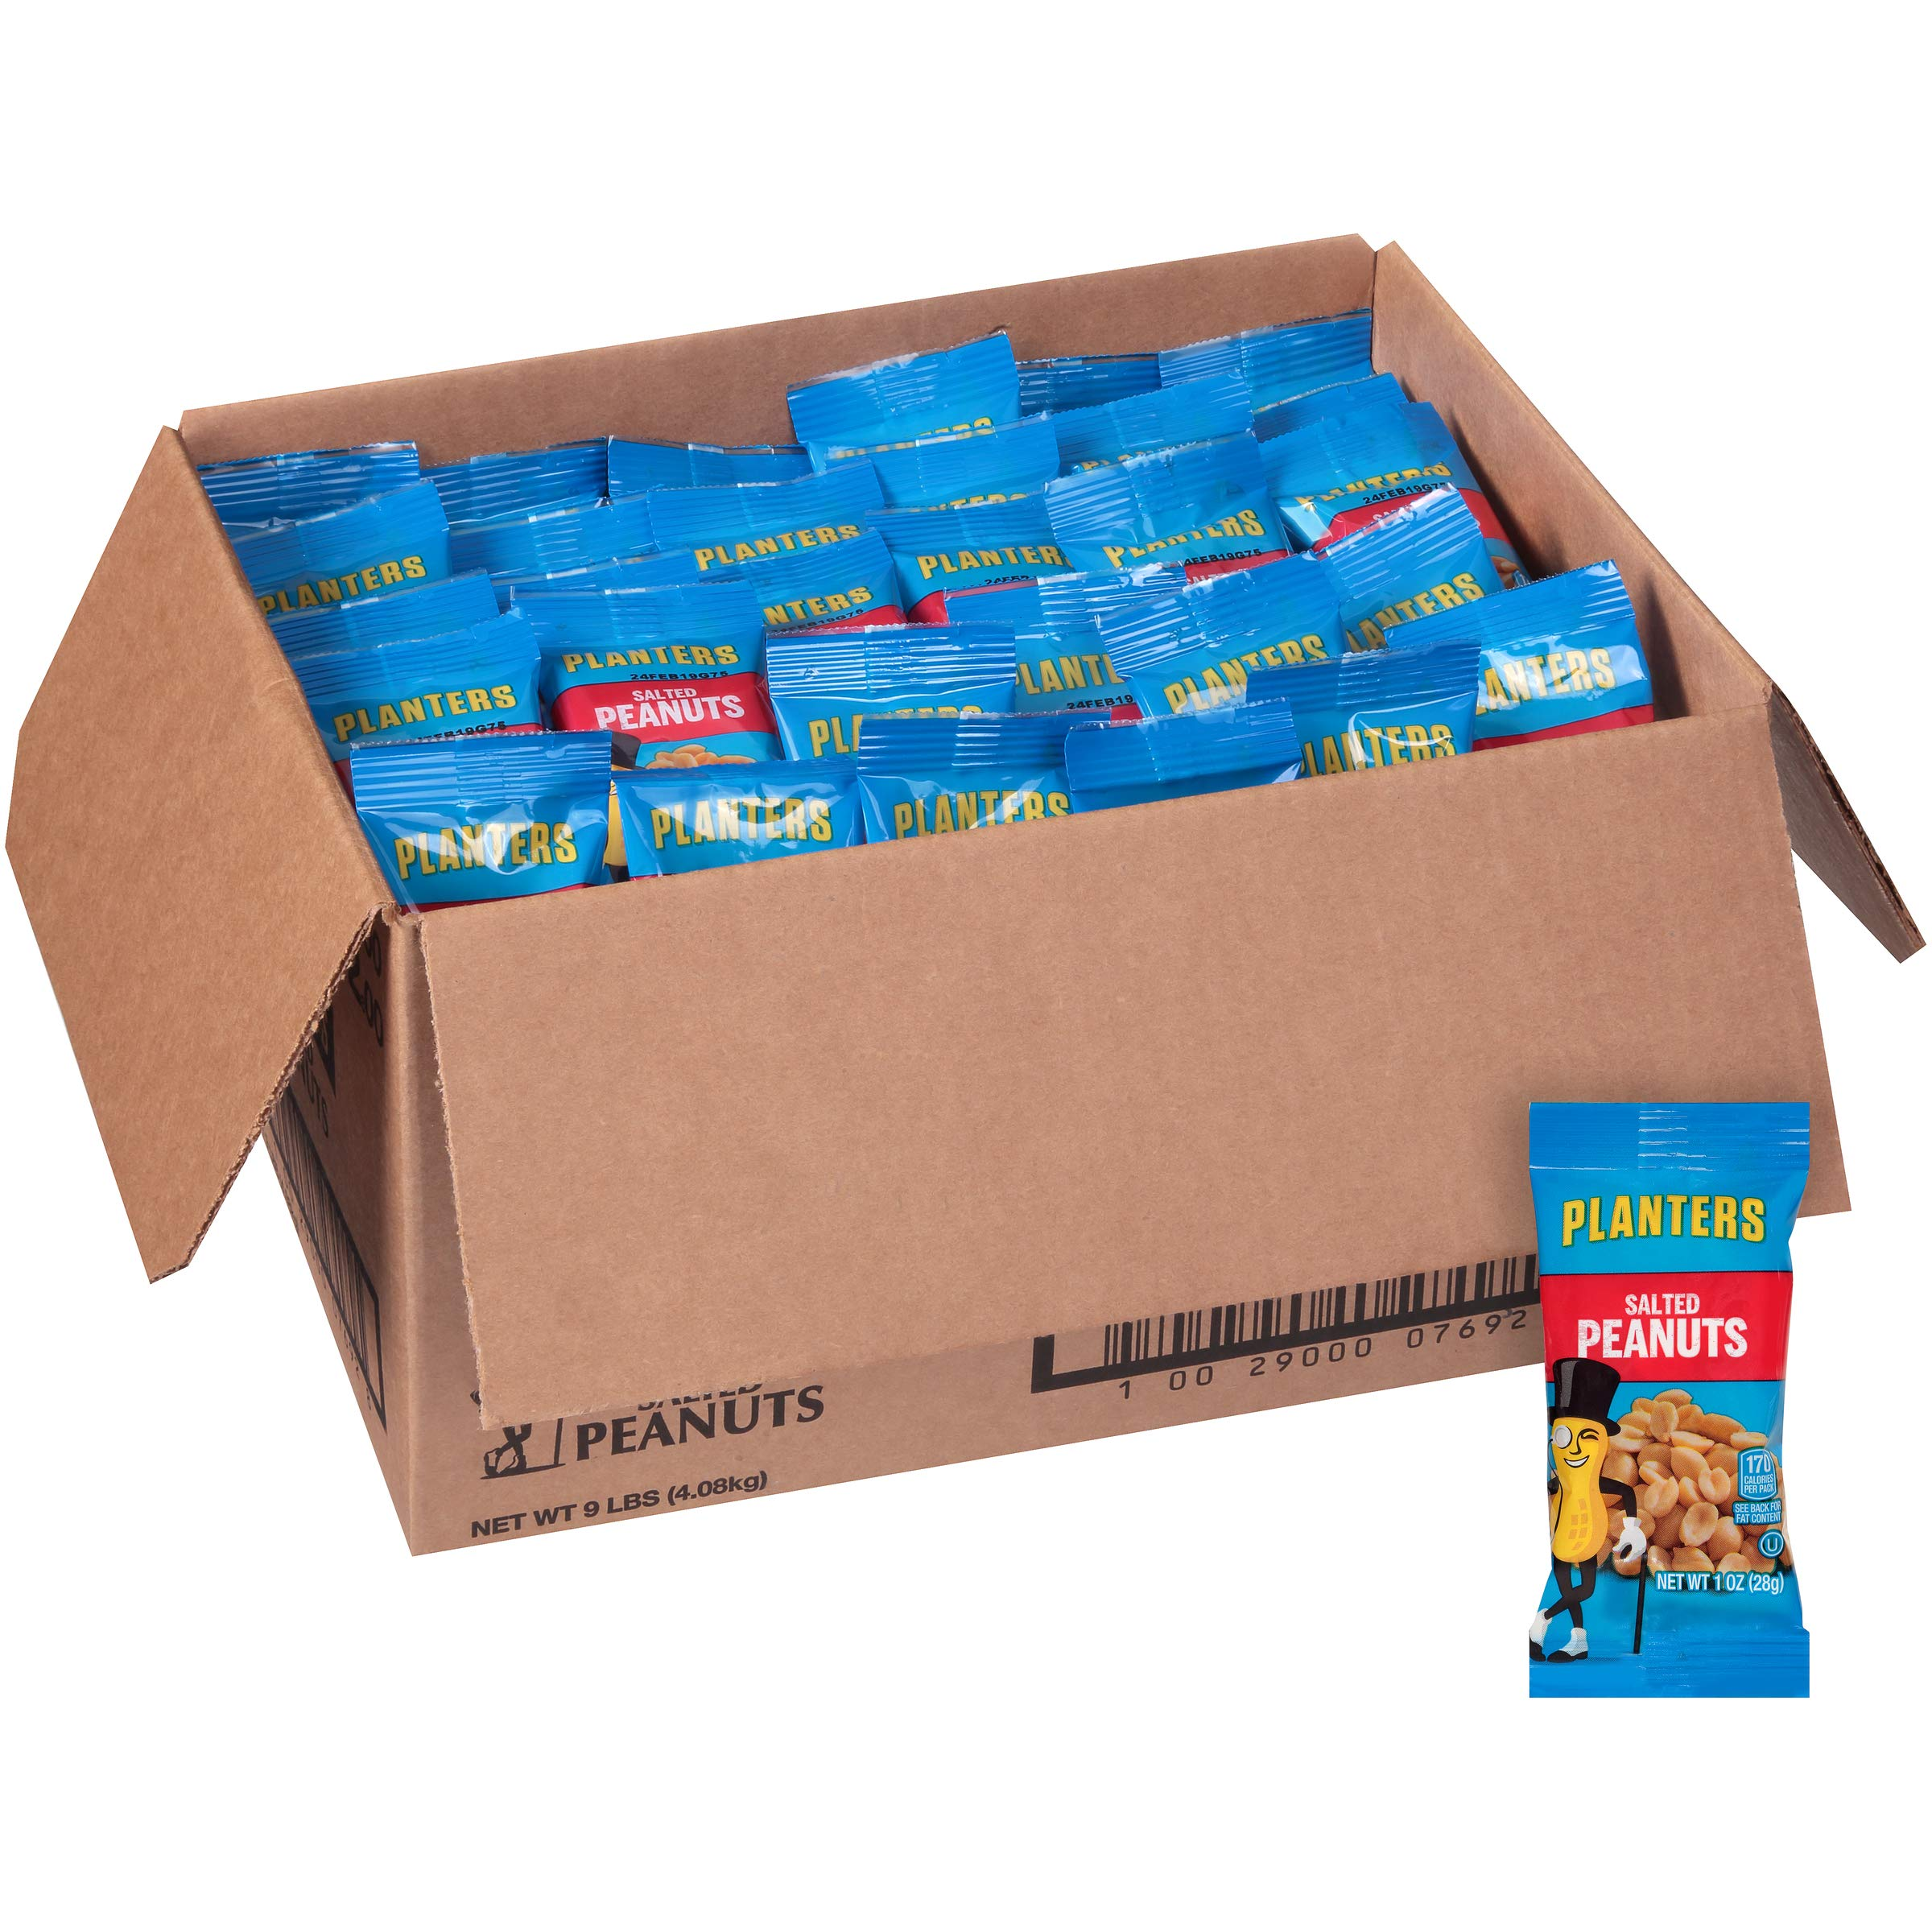 Planters Single Serve Salted Peanuts (1 oz Bags, Pack of 144) by Planters (Image #4)